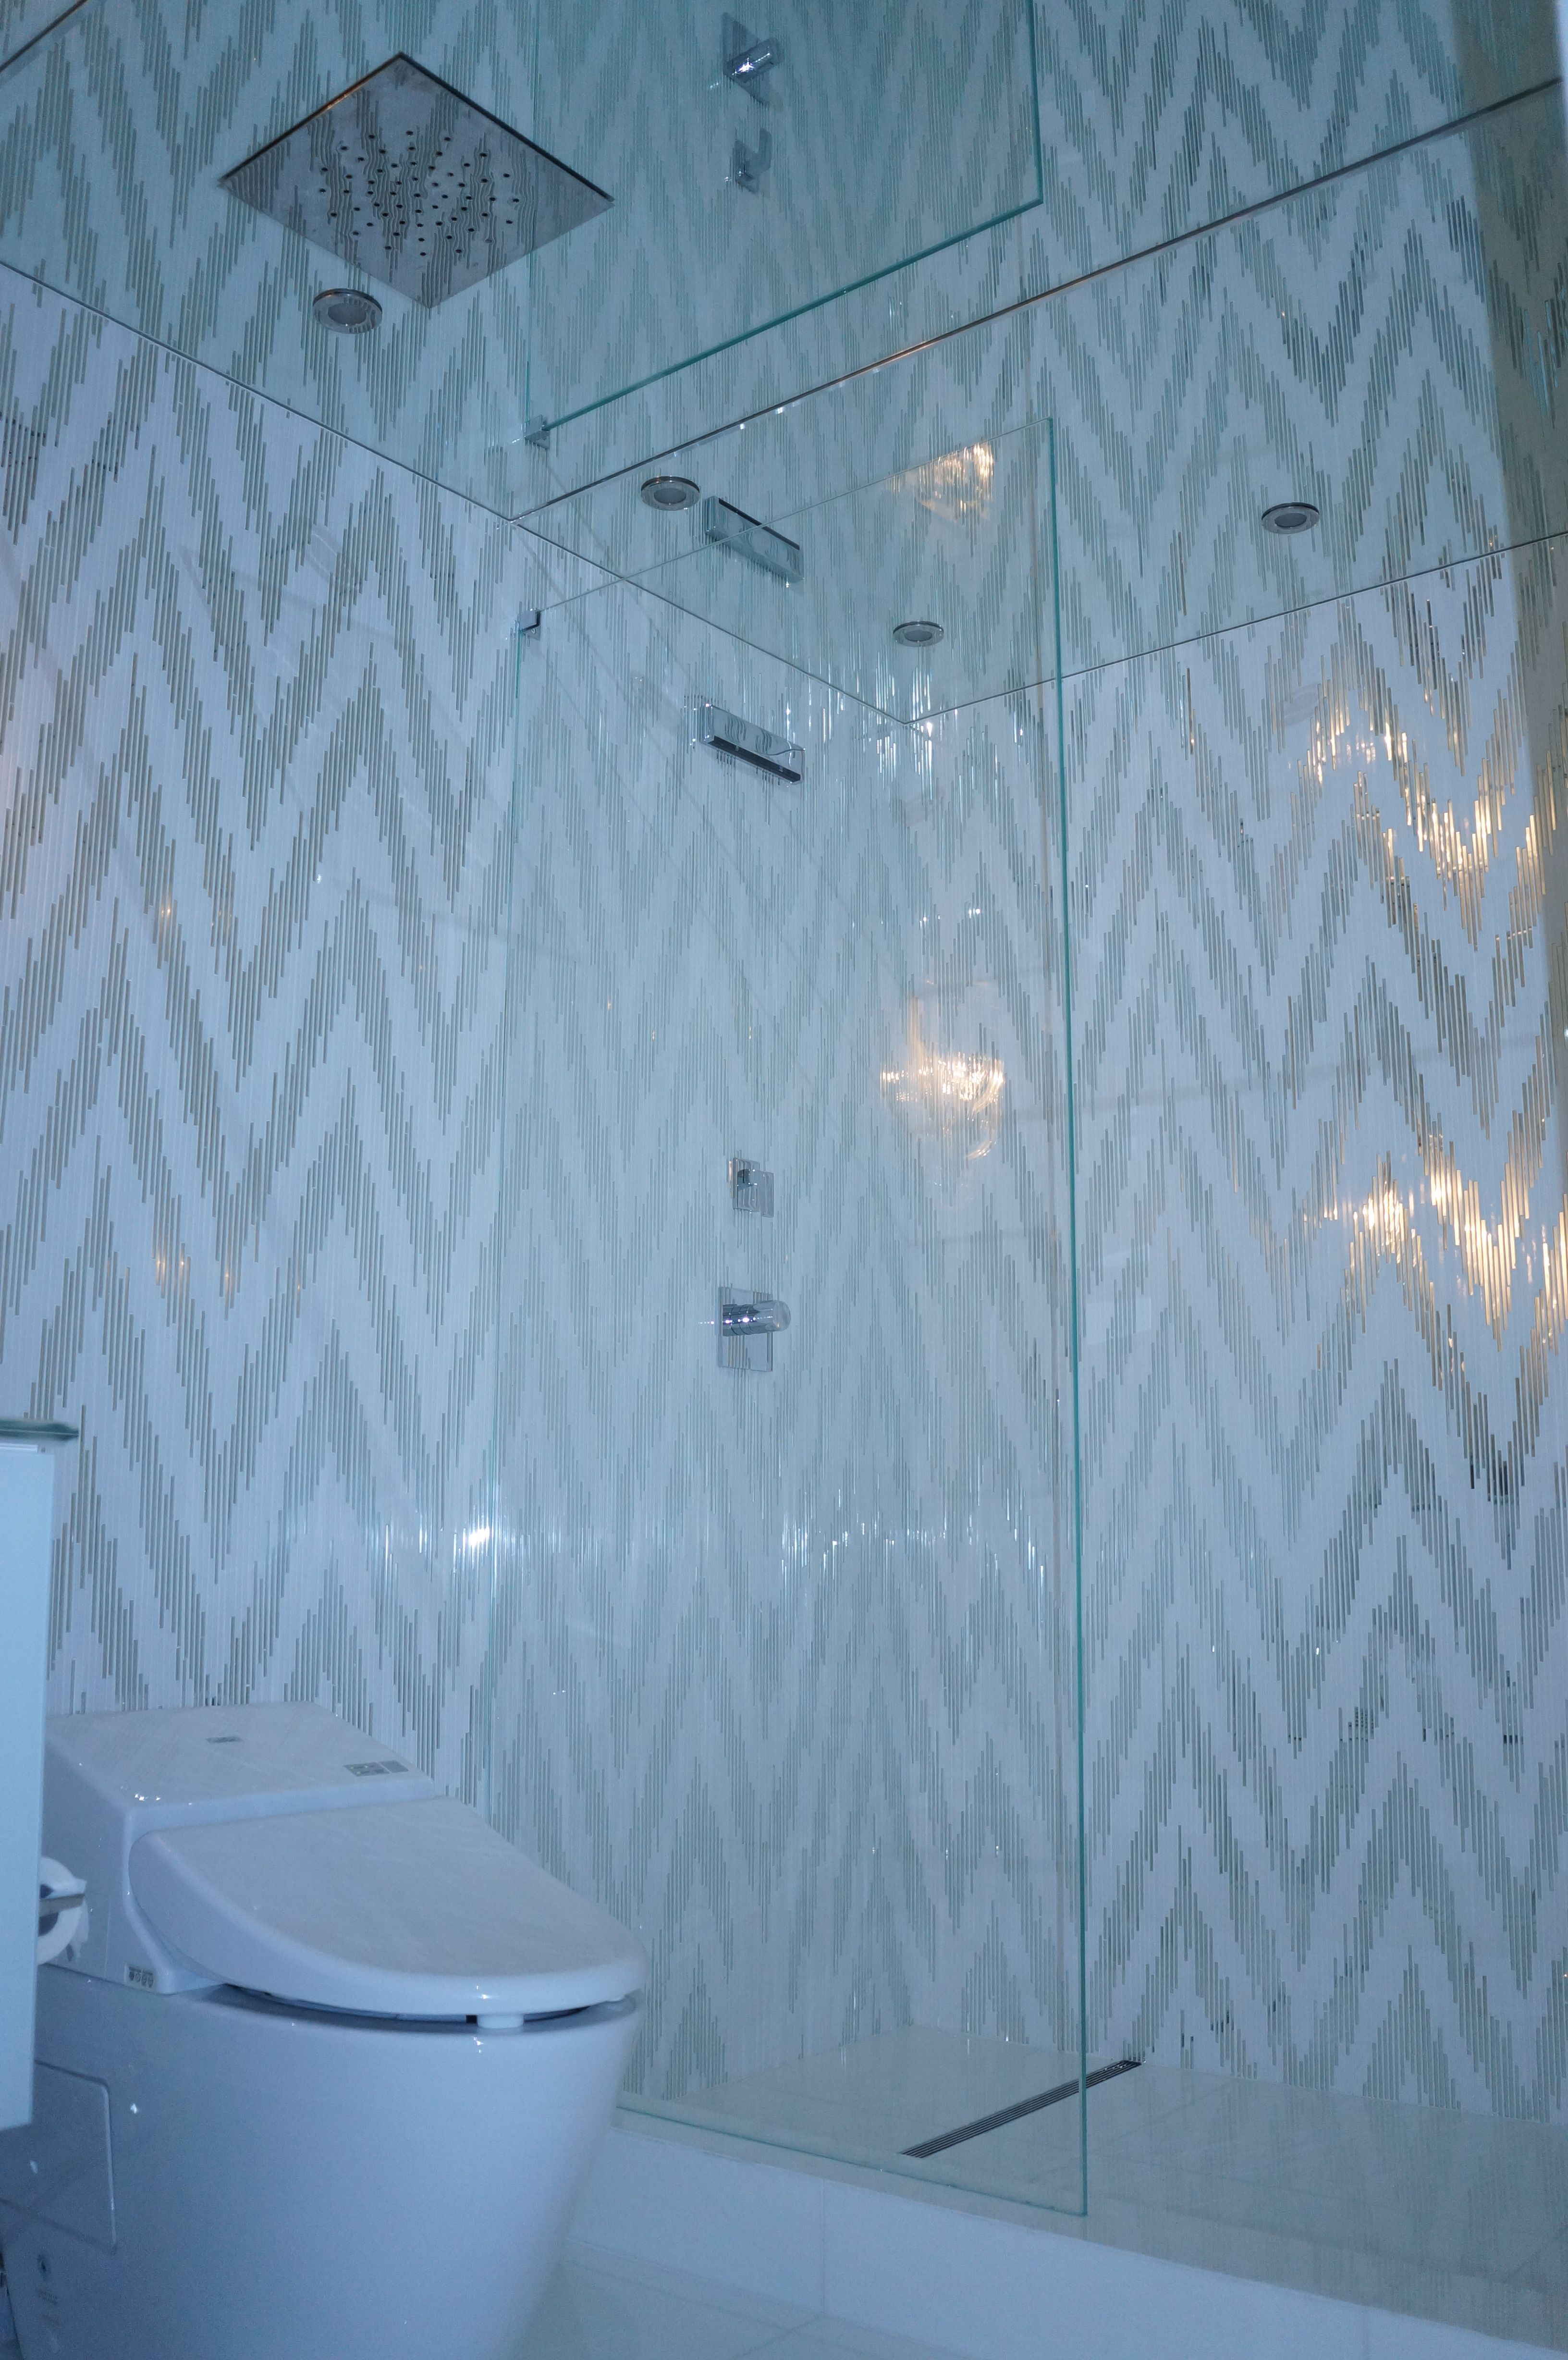 Guest bath in Ft. Lauderdale continued. Saphire glass shower divide ...